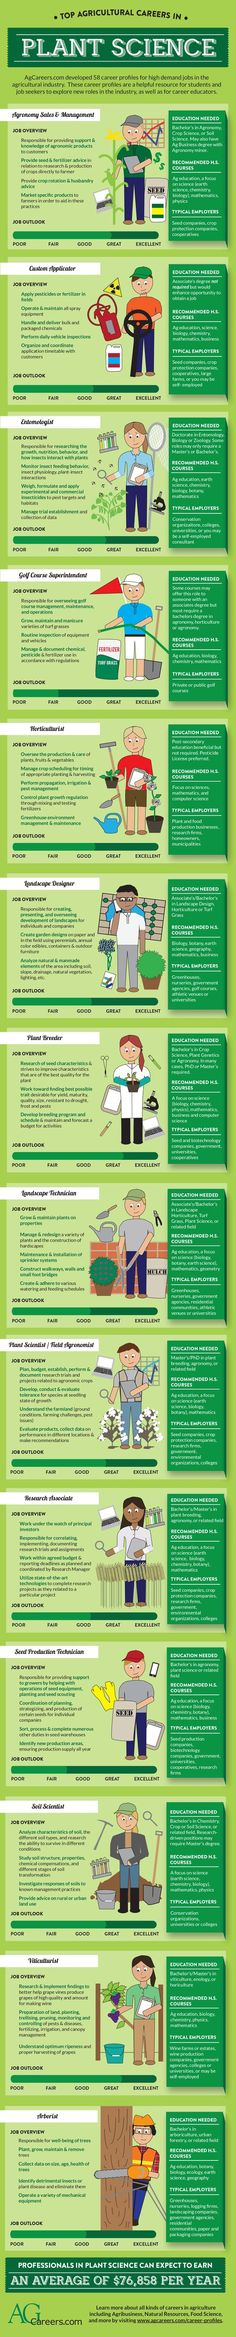 Top agricultural career in #PlantScience. Learn more on AgCareers.com: http://www.agcareers.com/career-profiles/: